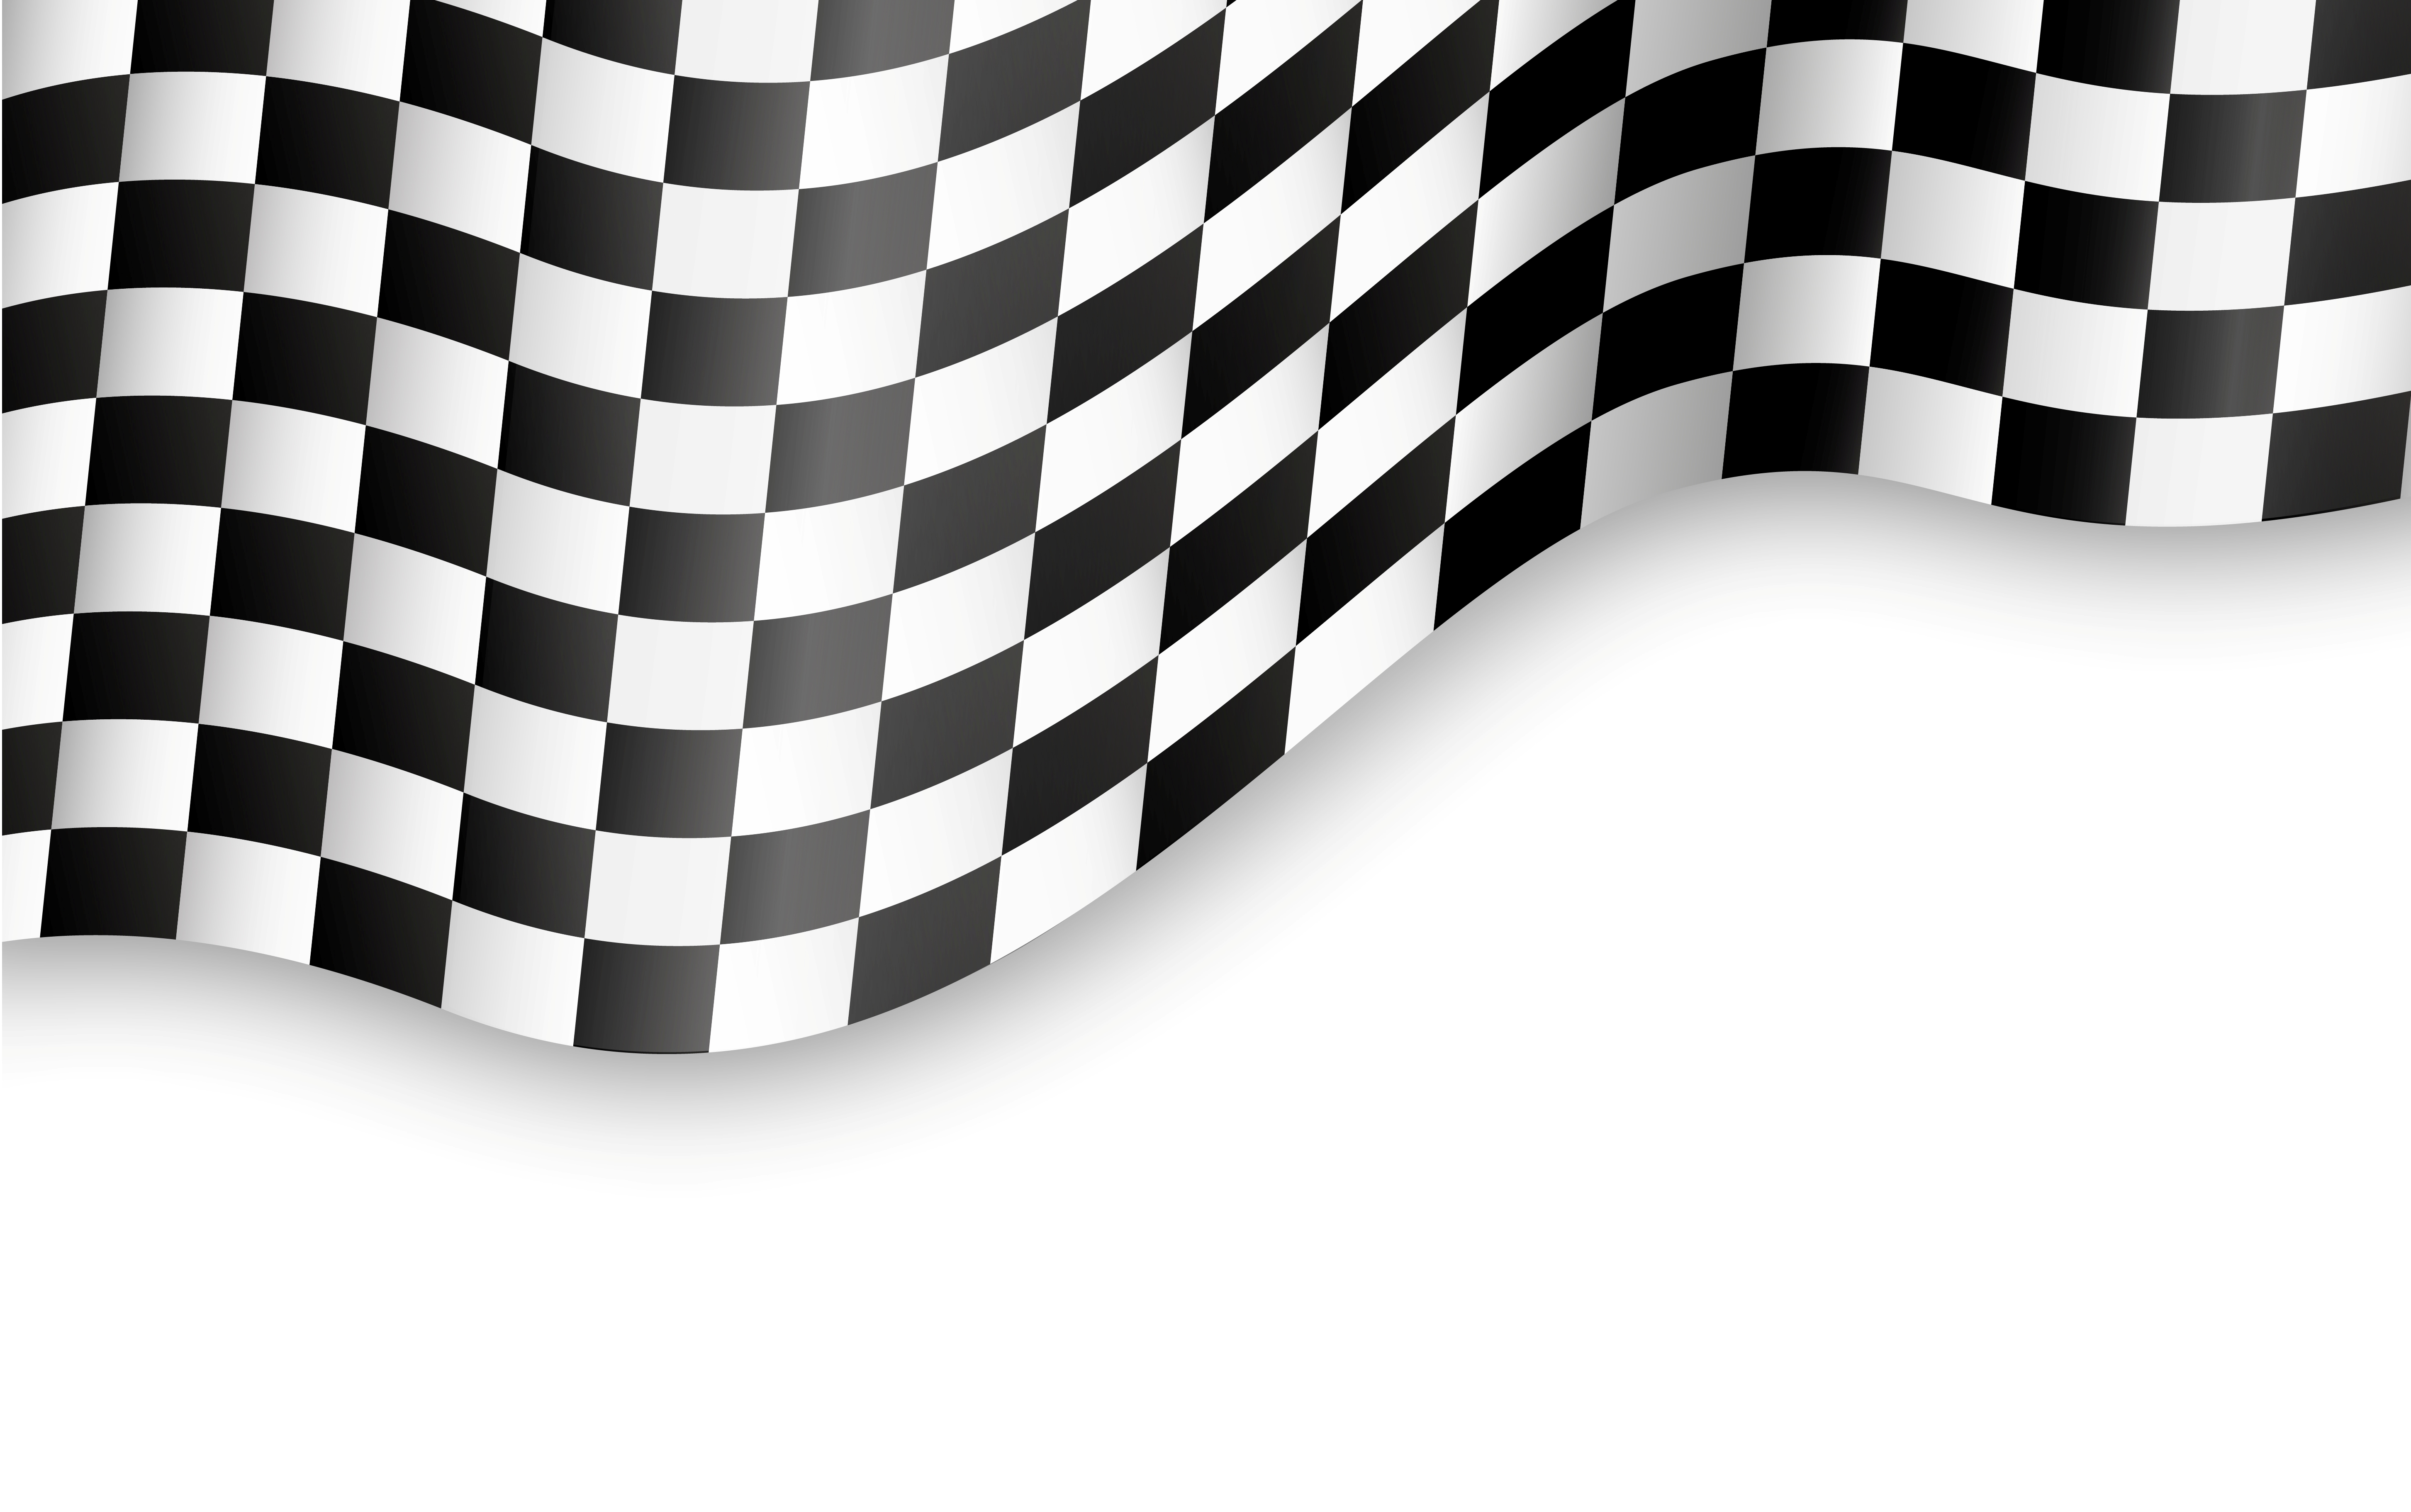 checkered flag photo powerpoint background #4856